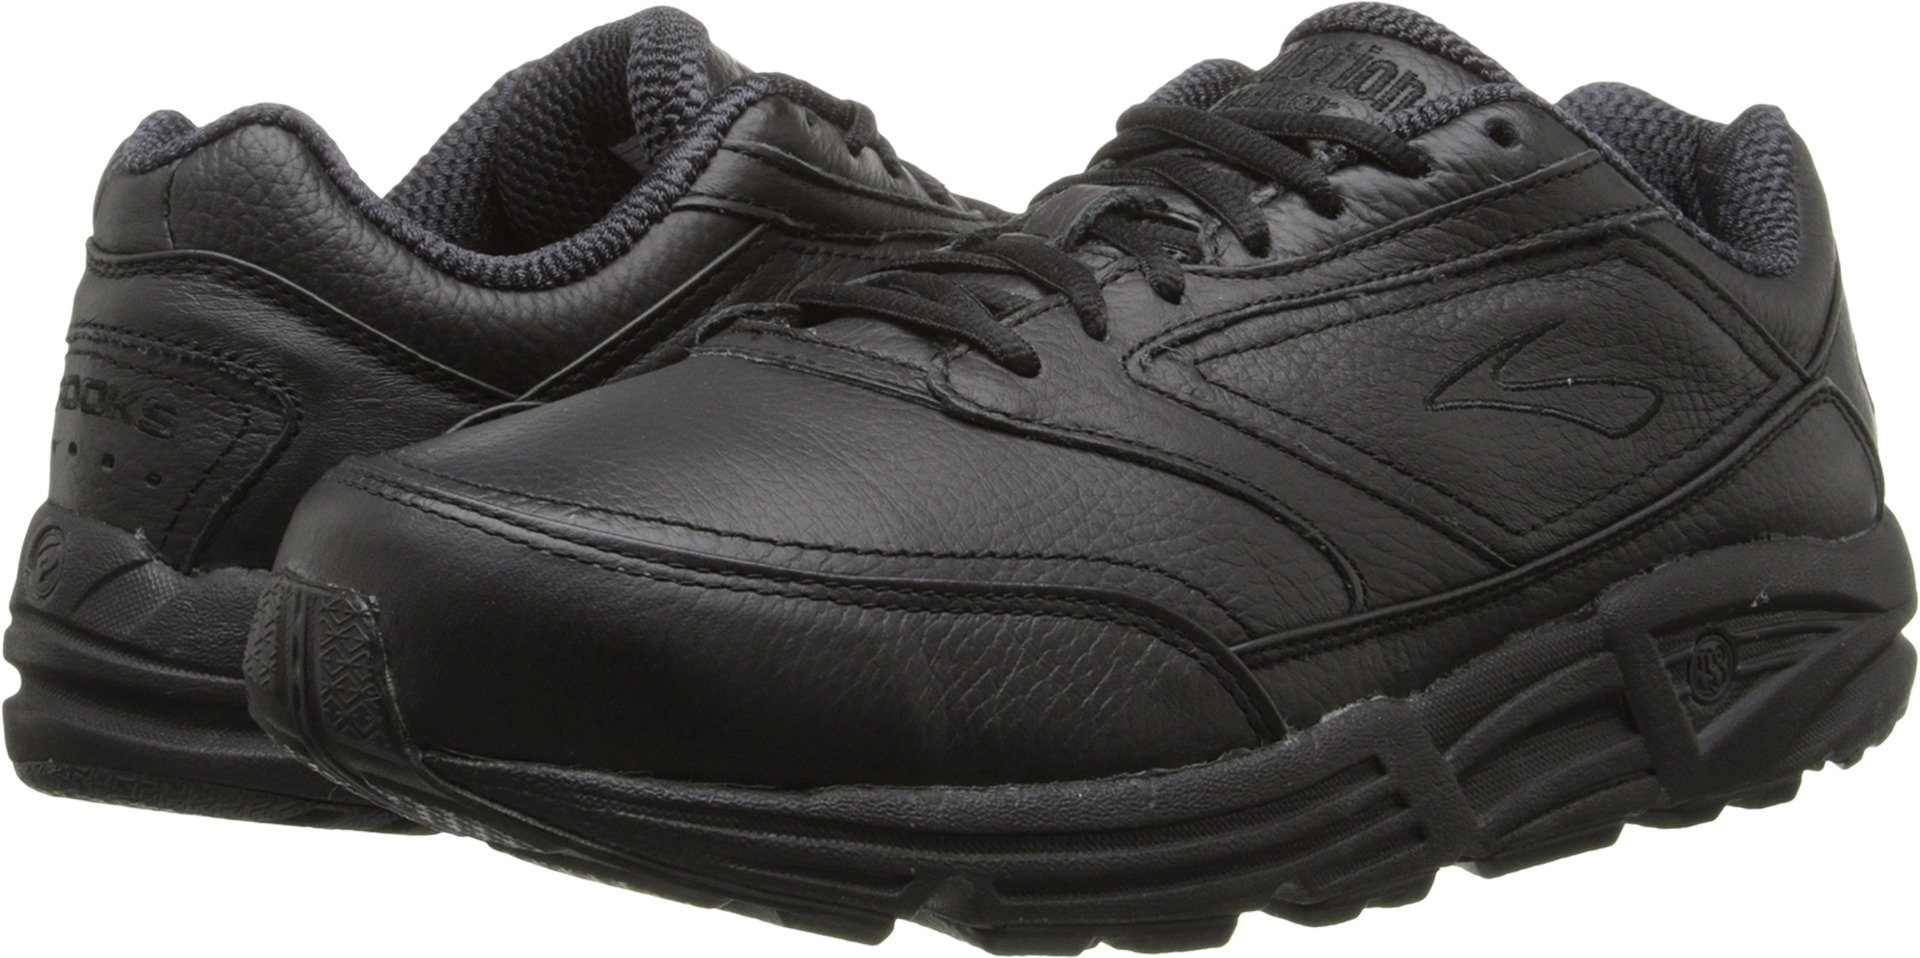 Brooks Men 's Addiction Walker Walking Zapato, color negro, talla 10.5 D by Brooks